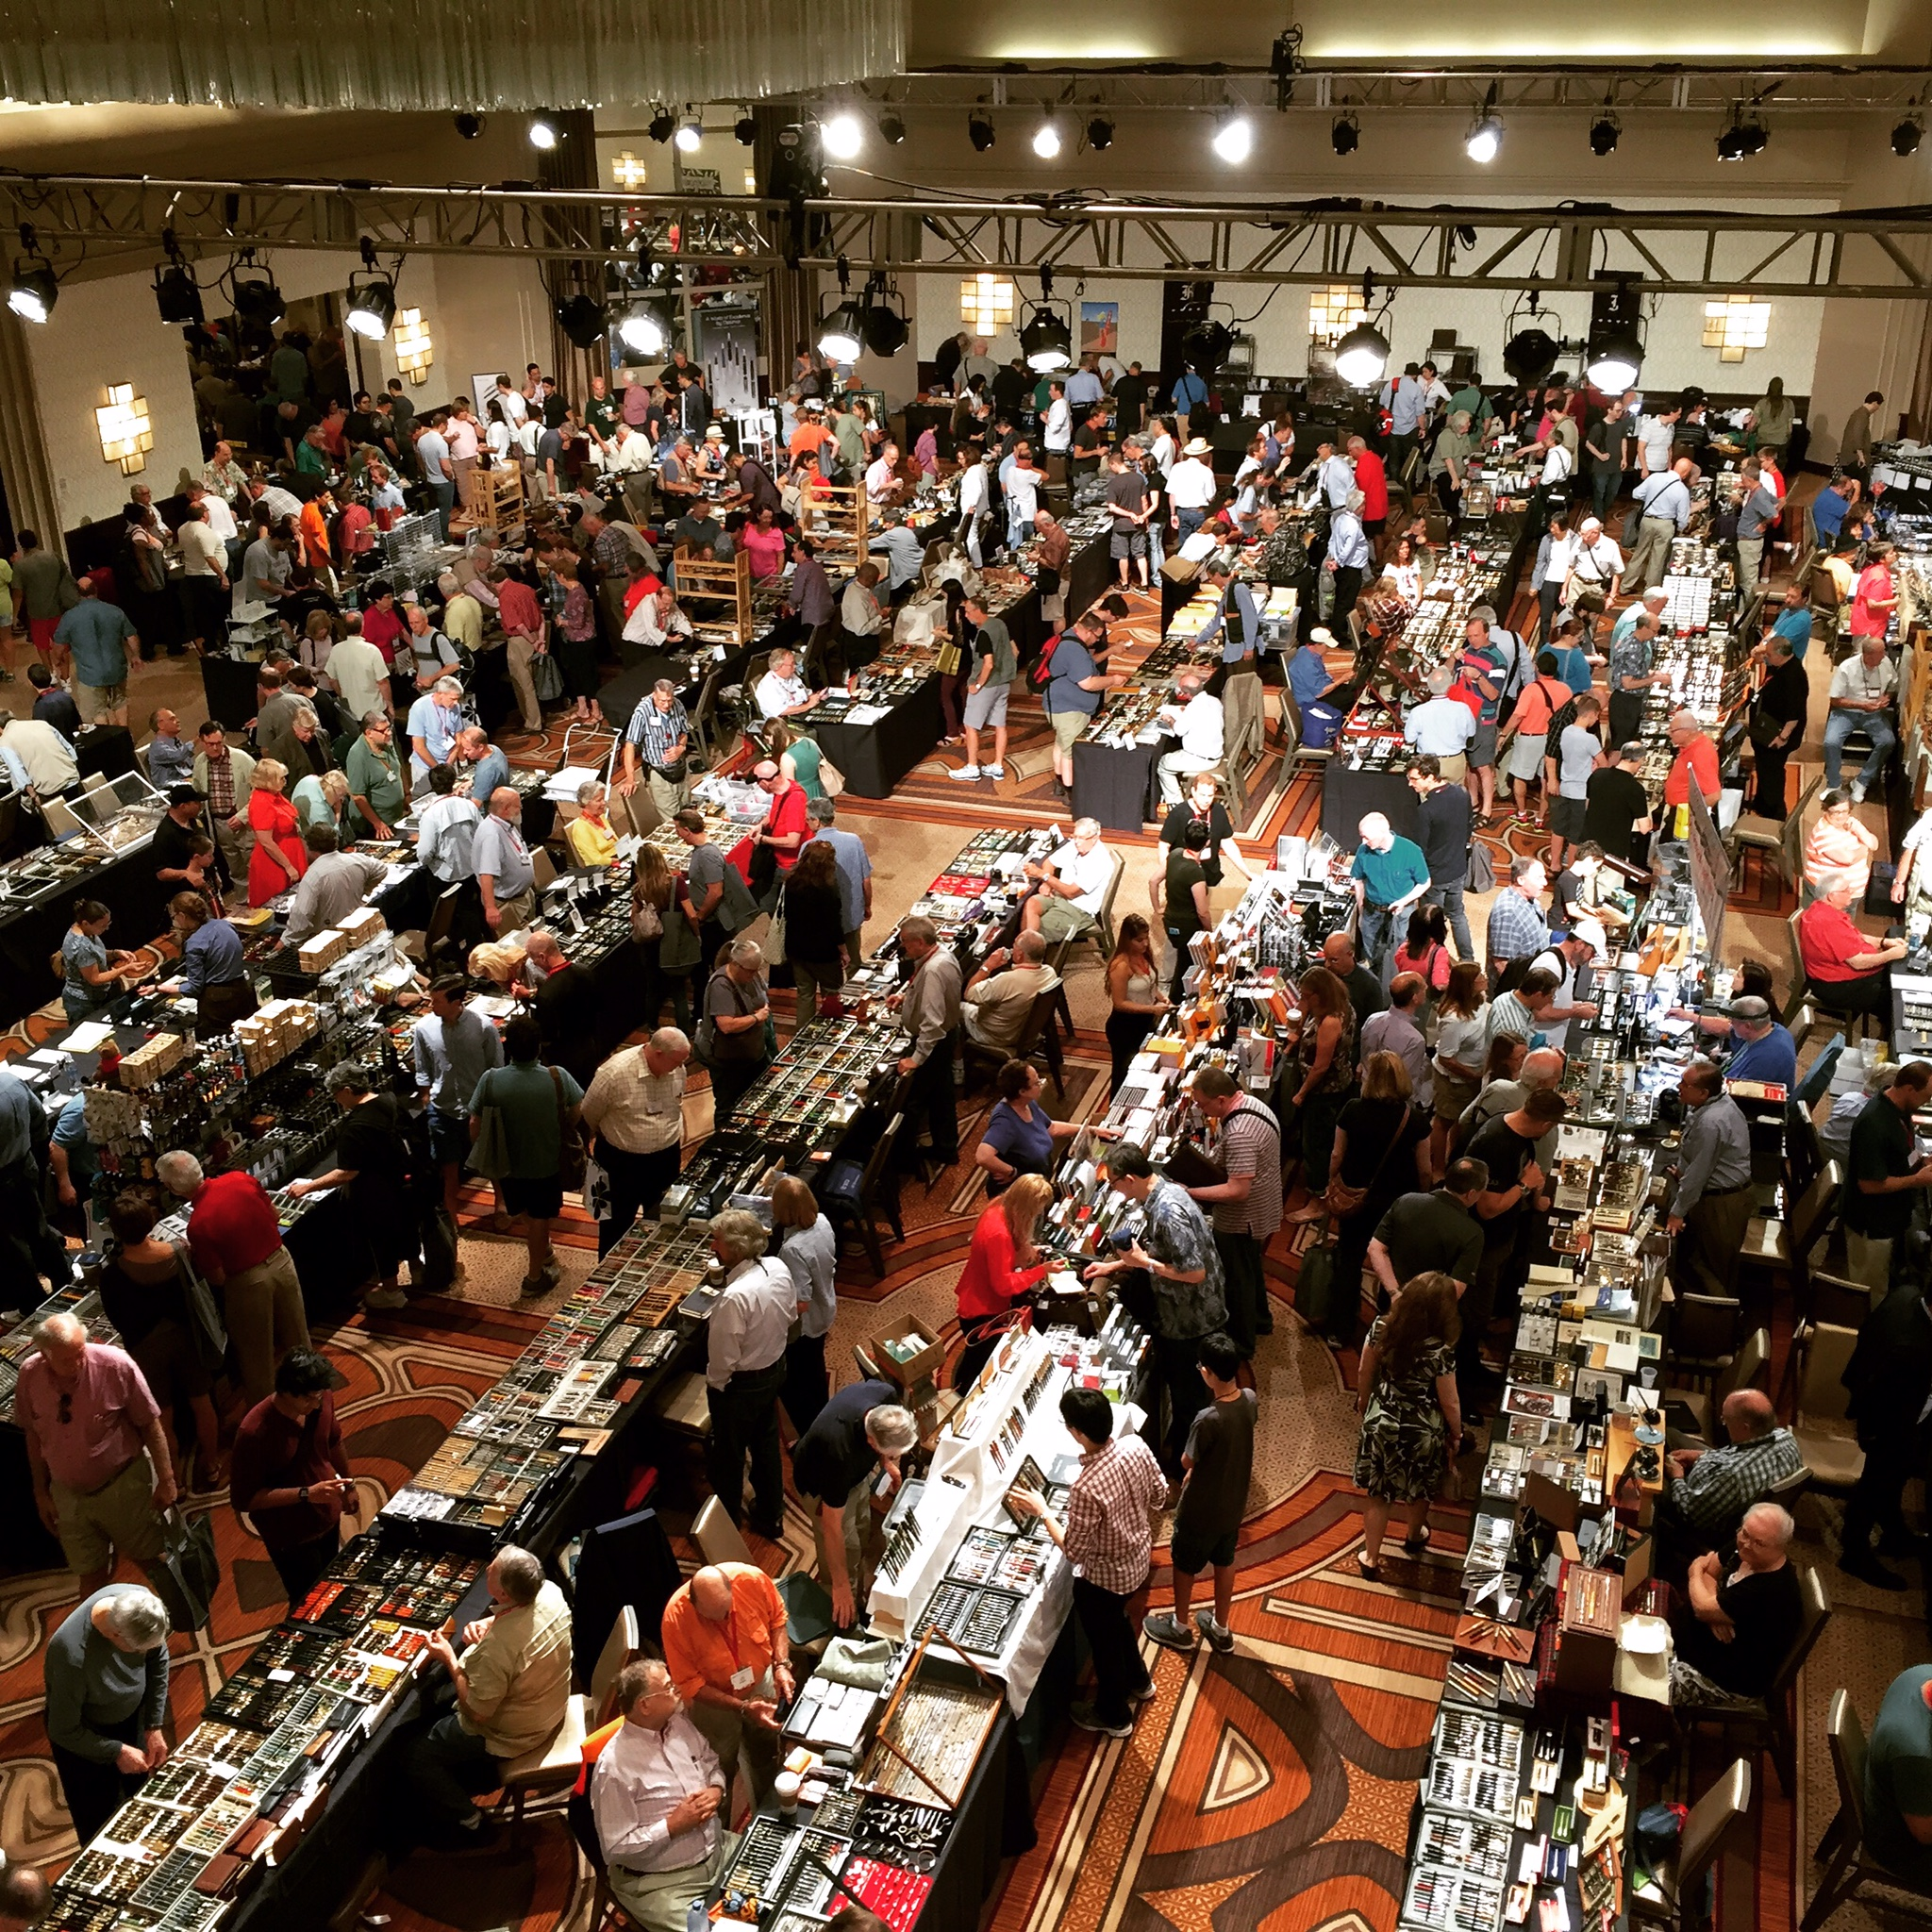 A shot of the show floor on Saturday at the 2015 Washington D.C. Pen Show. It's coming up soon. Will you be there?